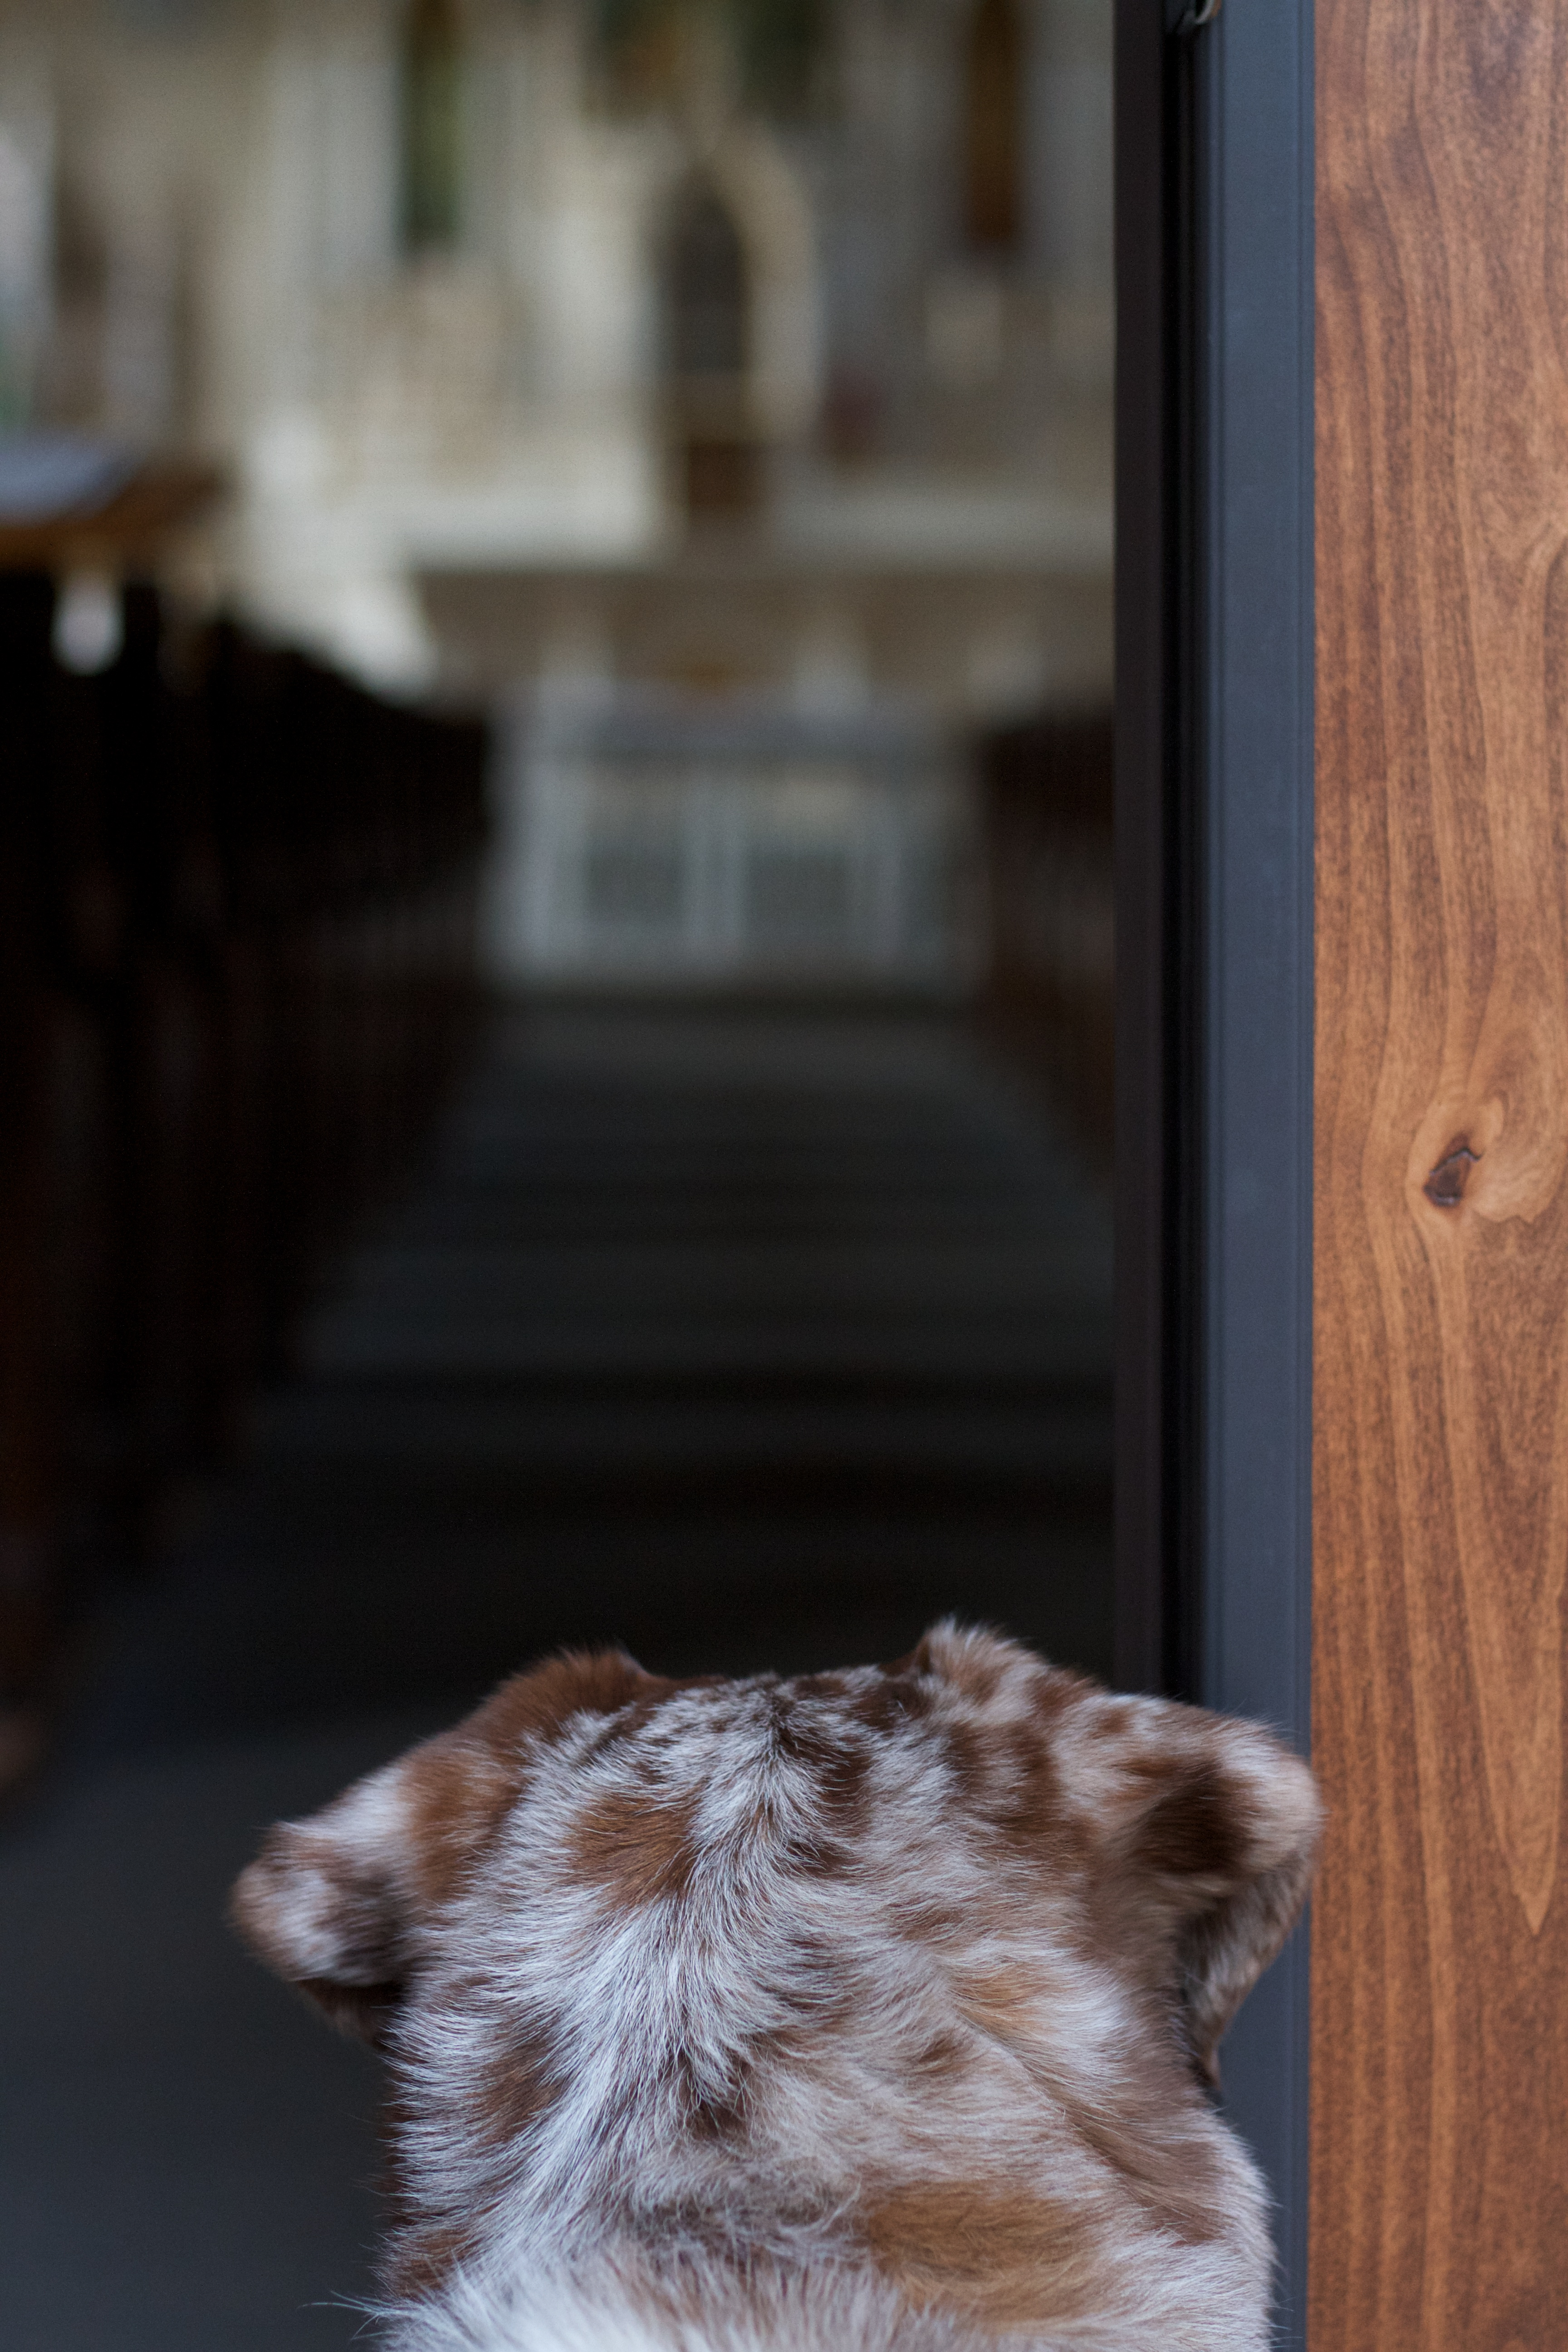 Not Interested in Church, Cat, Dog, Felix, Pet, HQ Photo